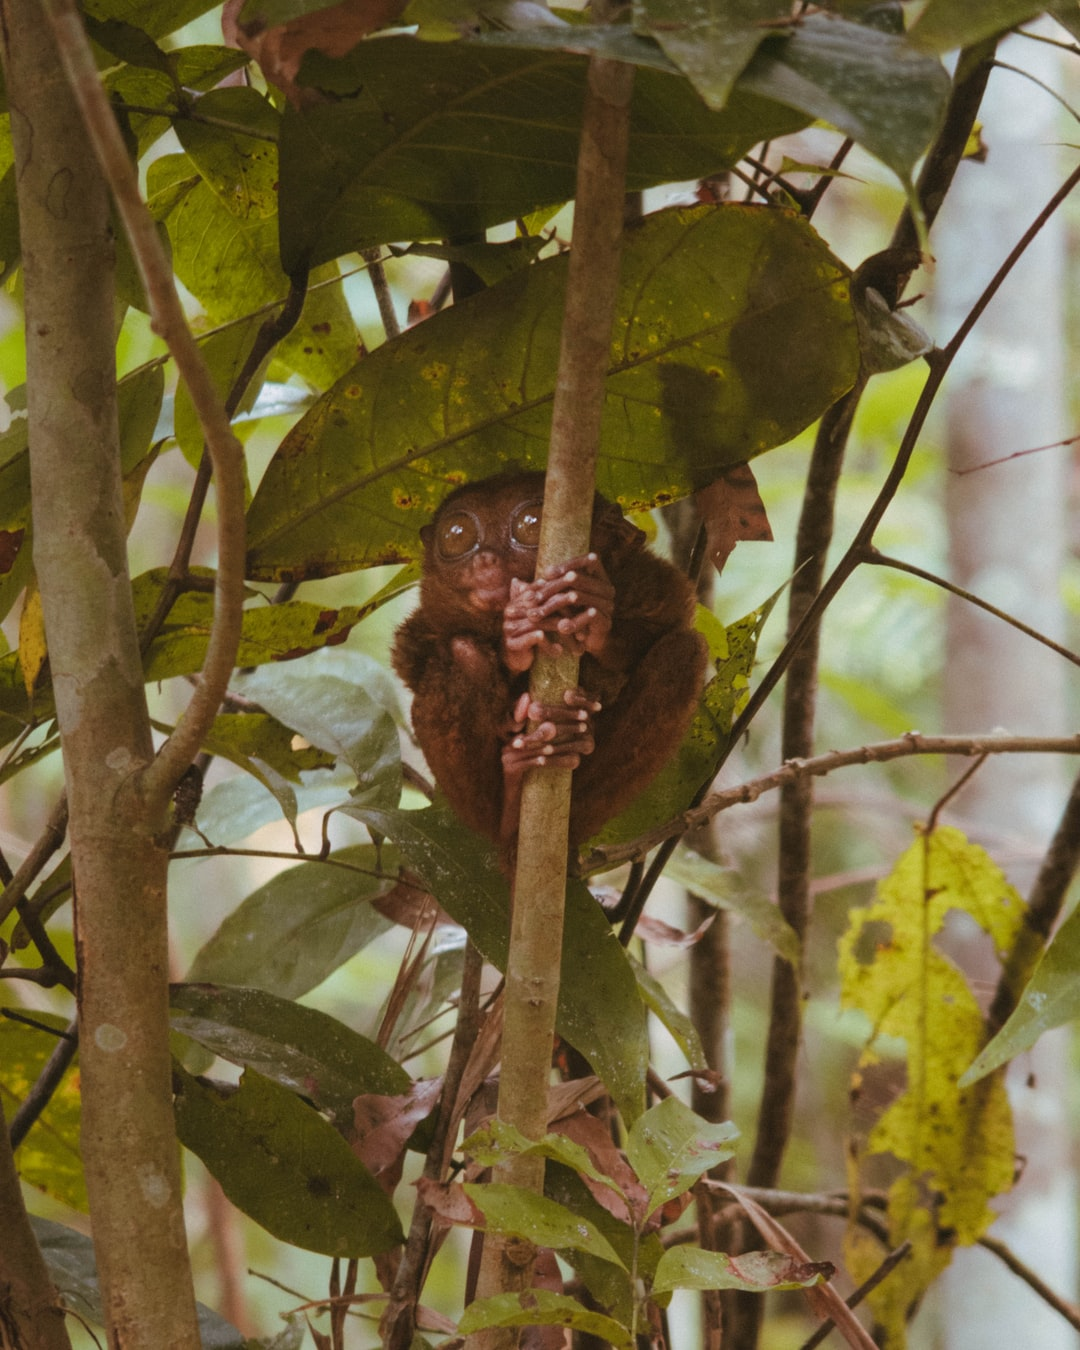 A tarsier clinging on to a small tree branch in Bohol, Philippines.